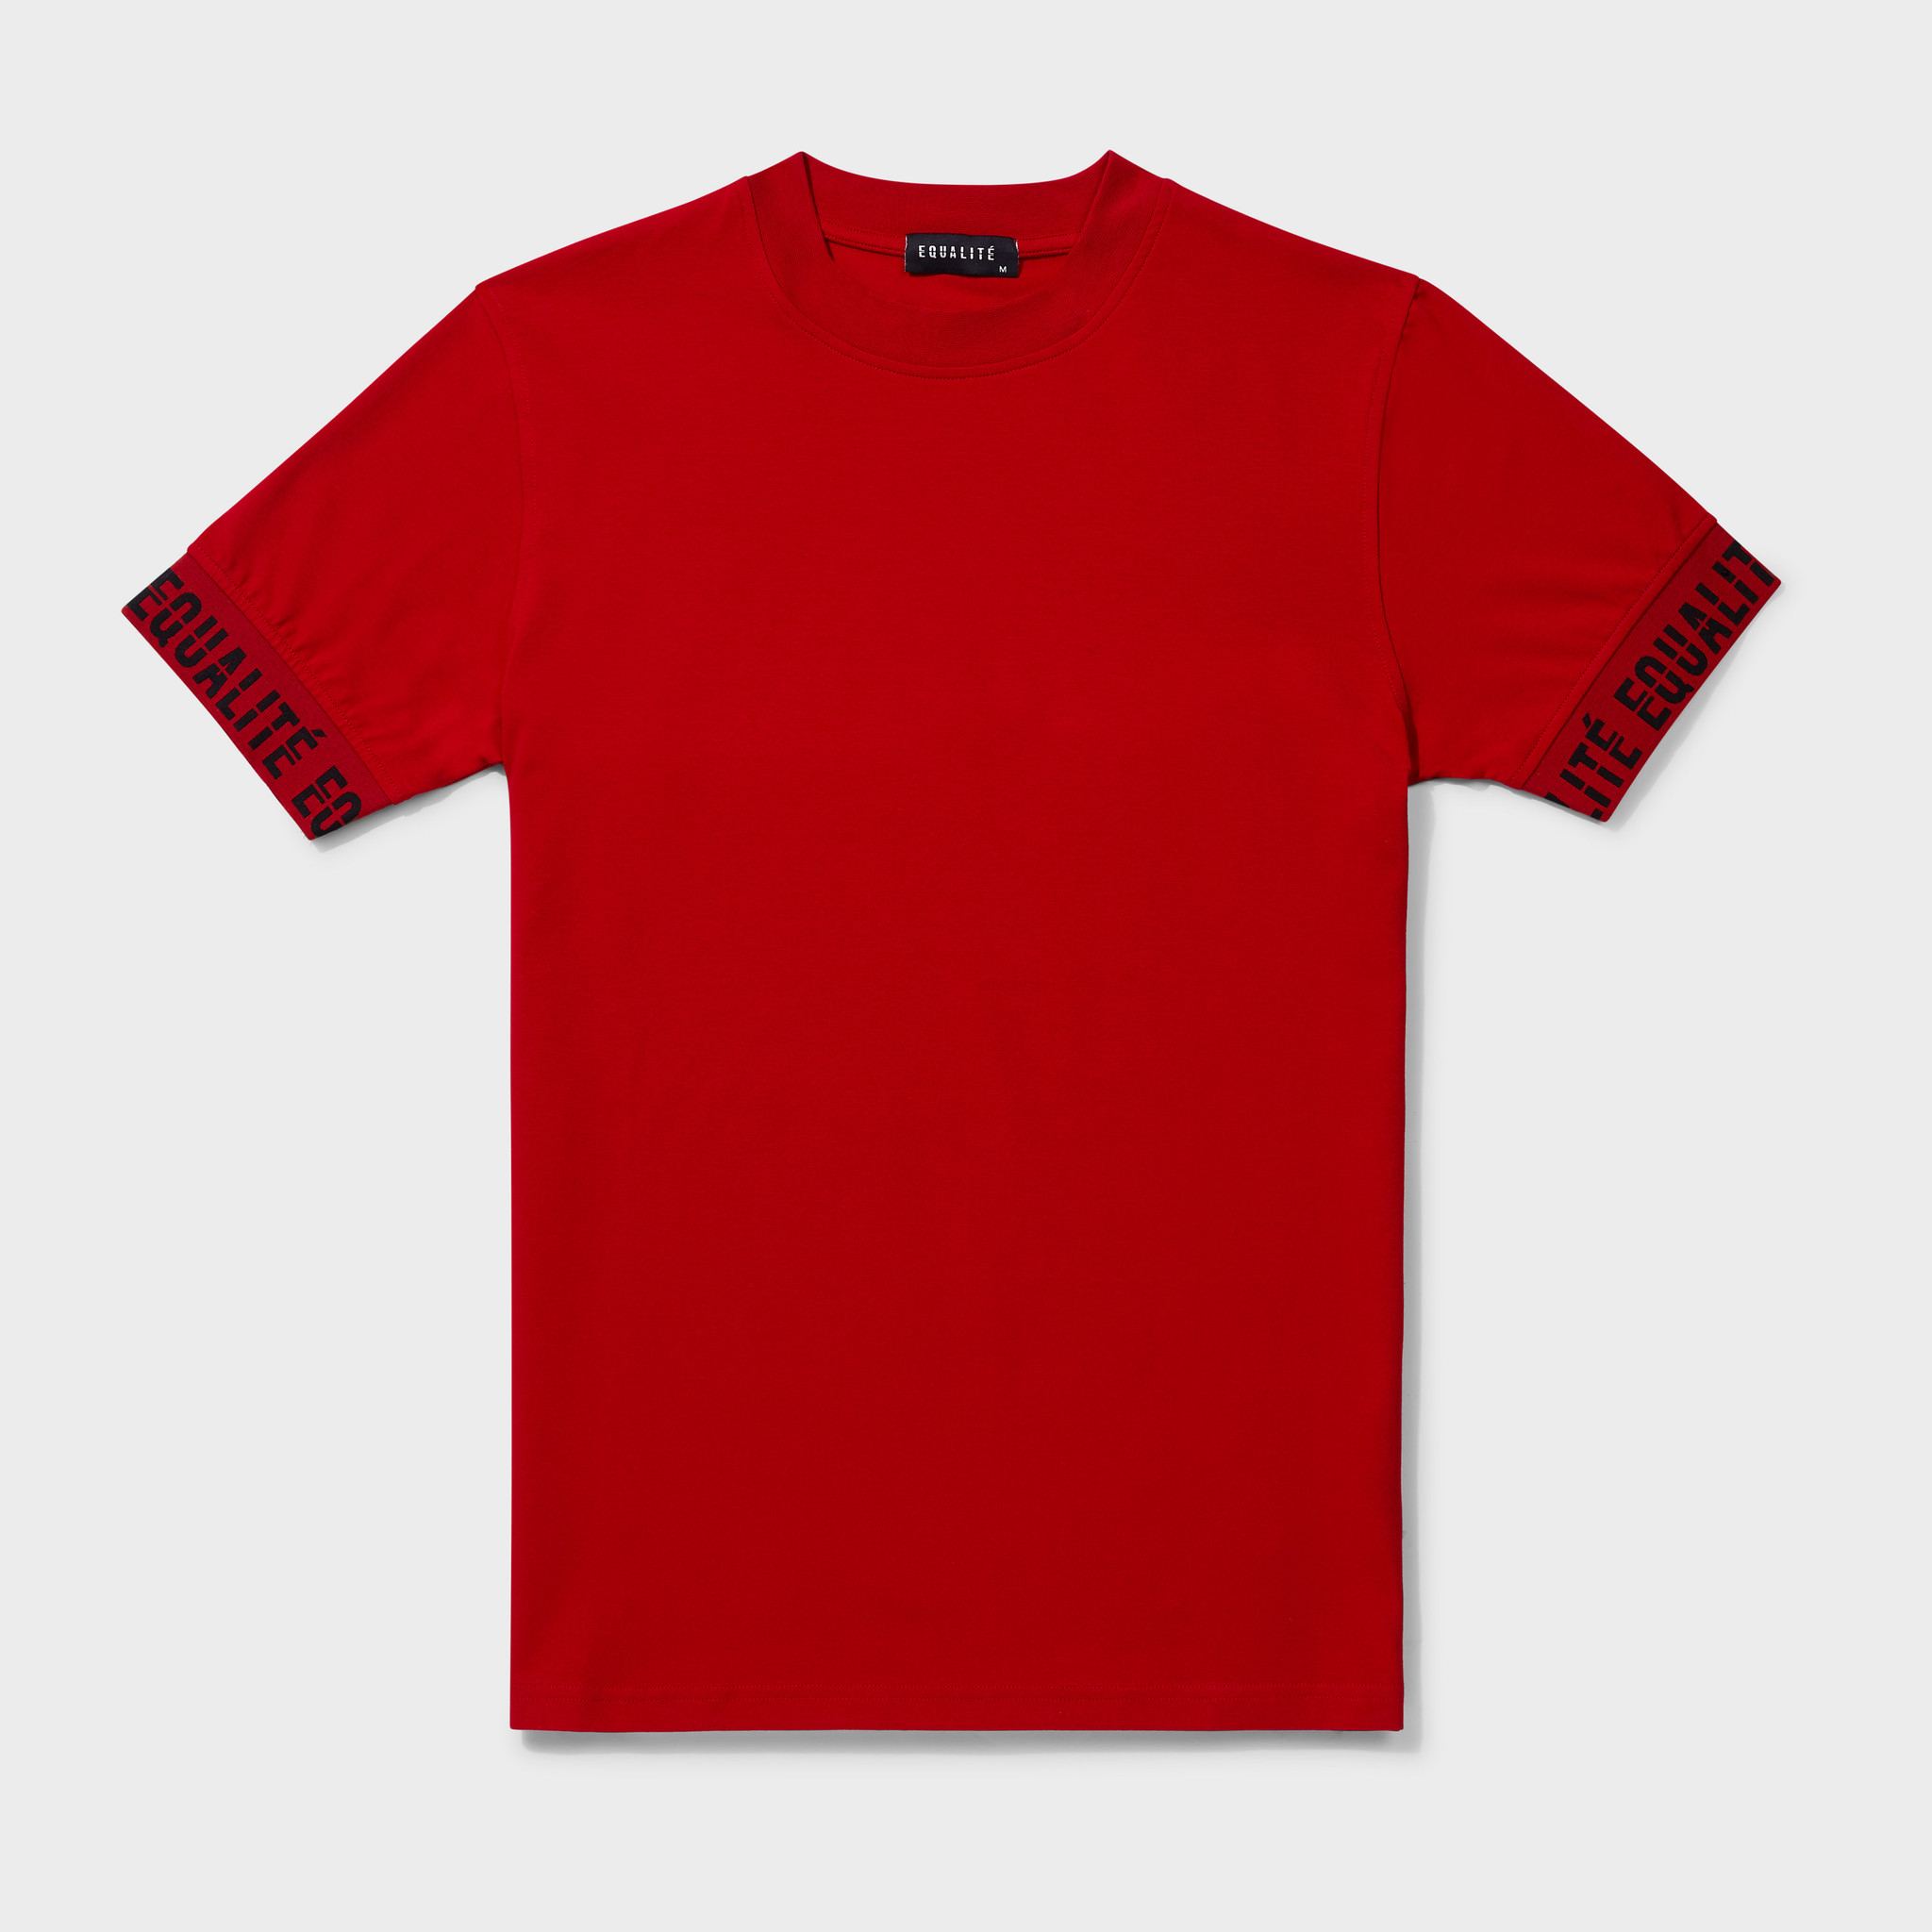 BAND TEE RED & BLACK-1